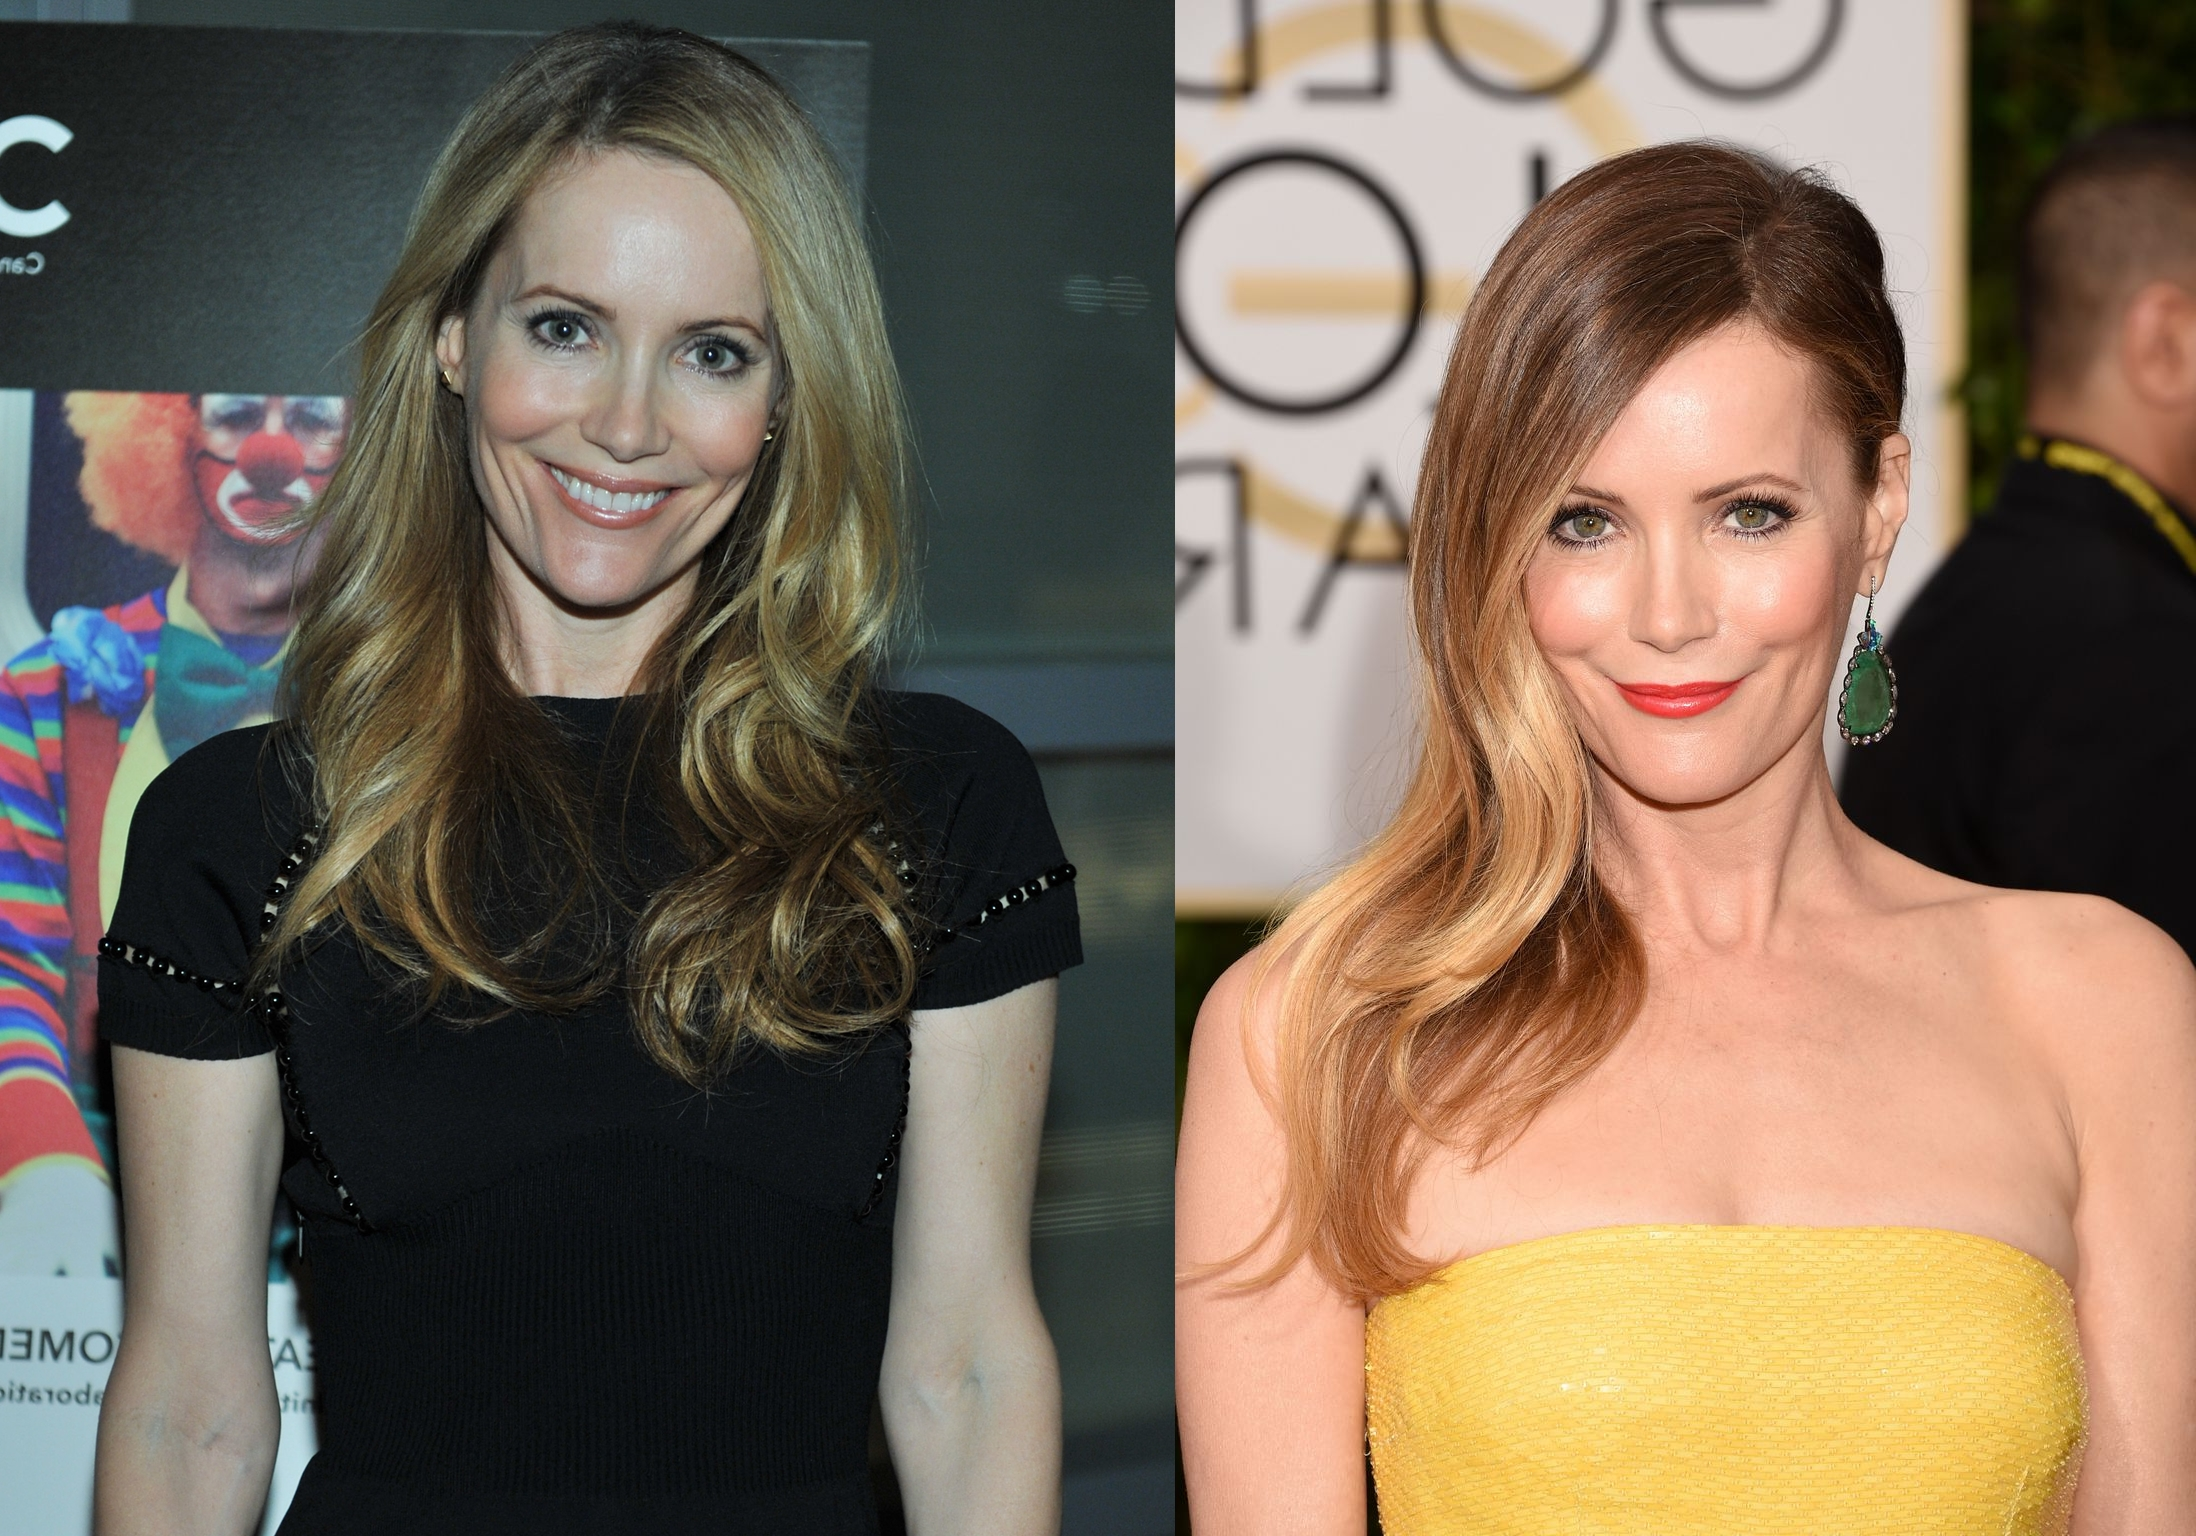 Leslie Mann Plastic Surgery Before And After Photos | 2018 ...